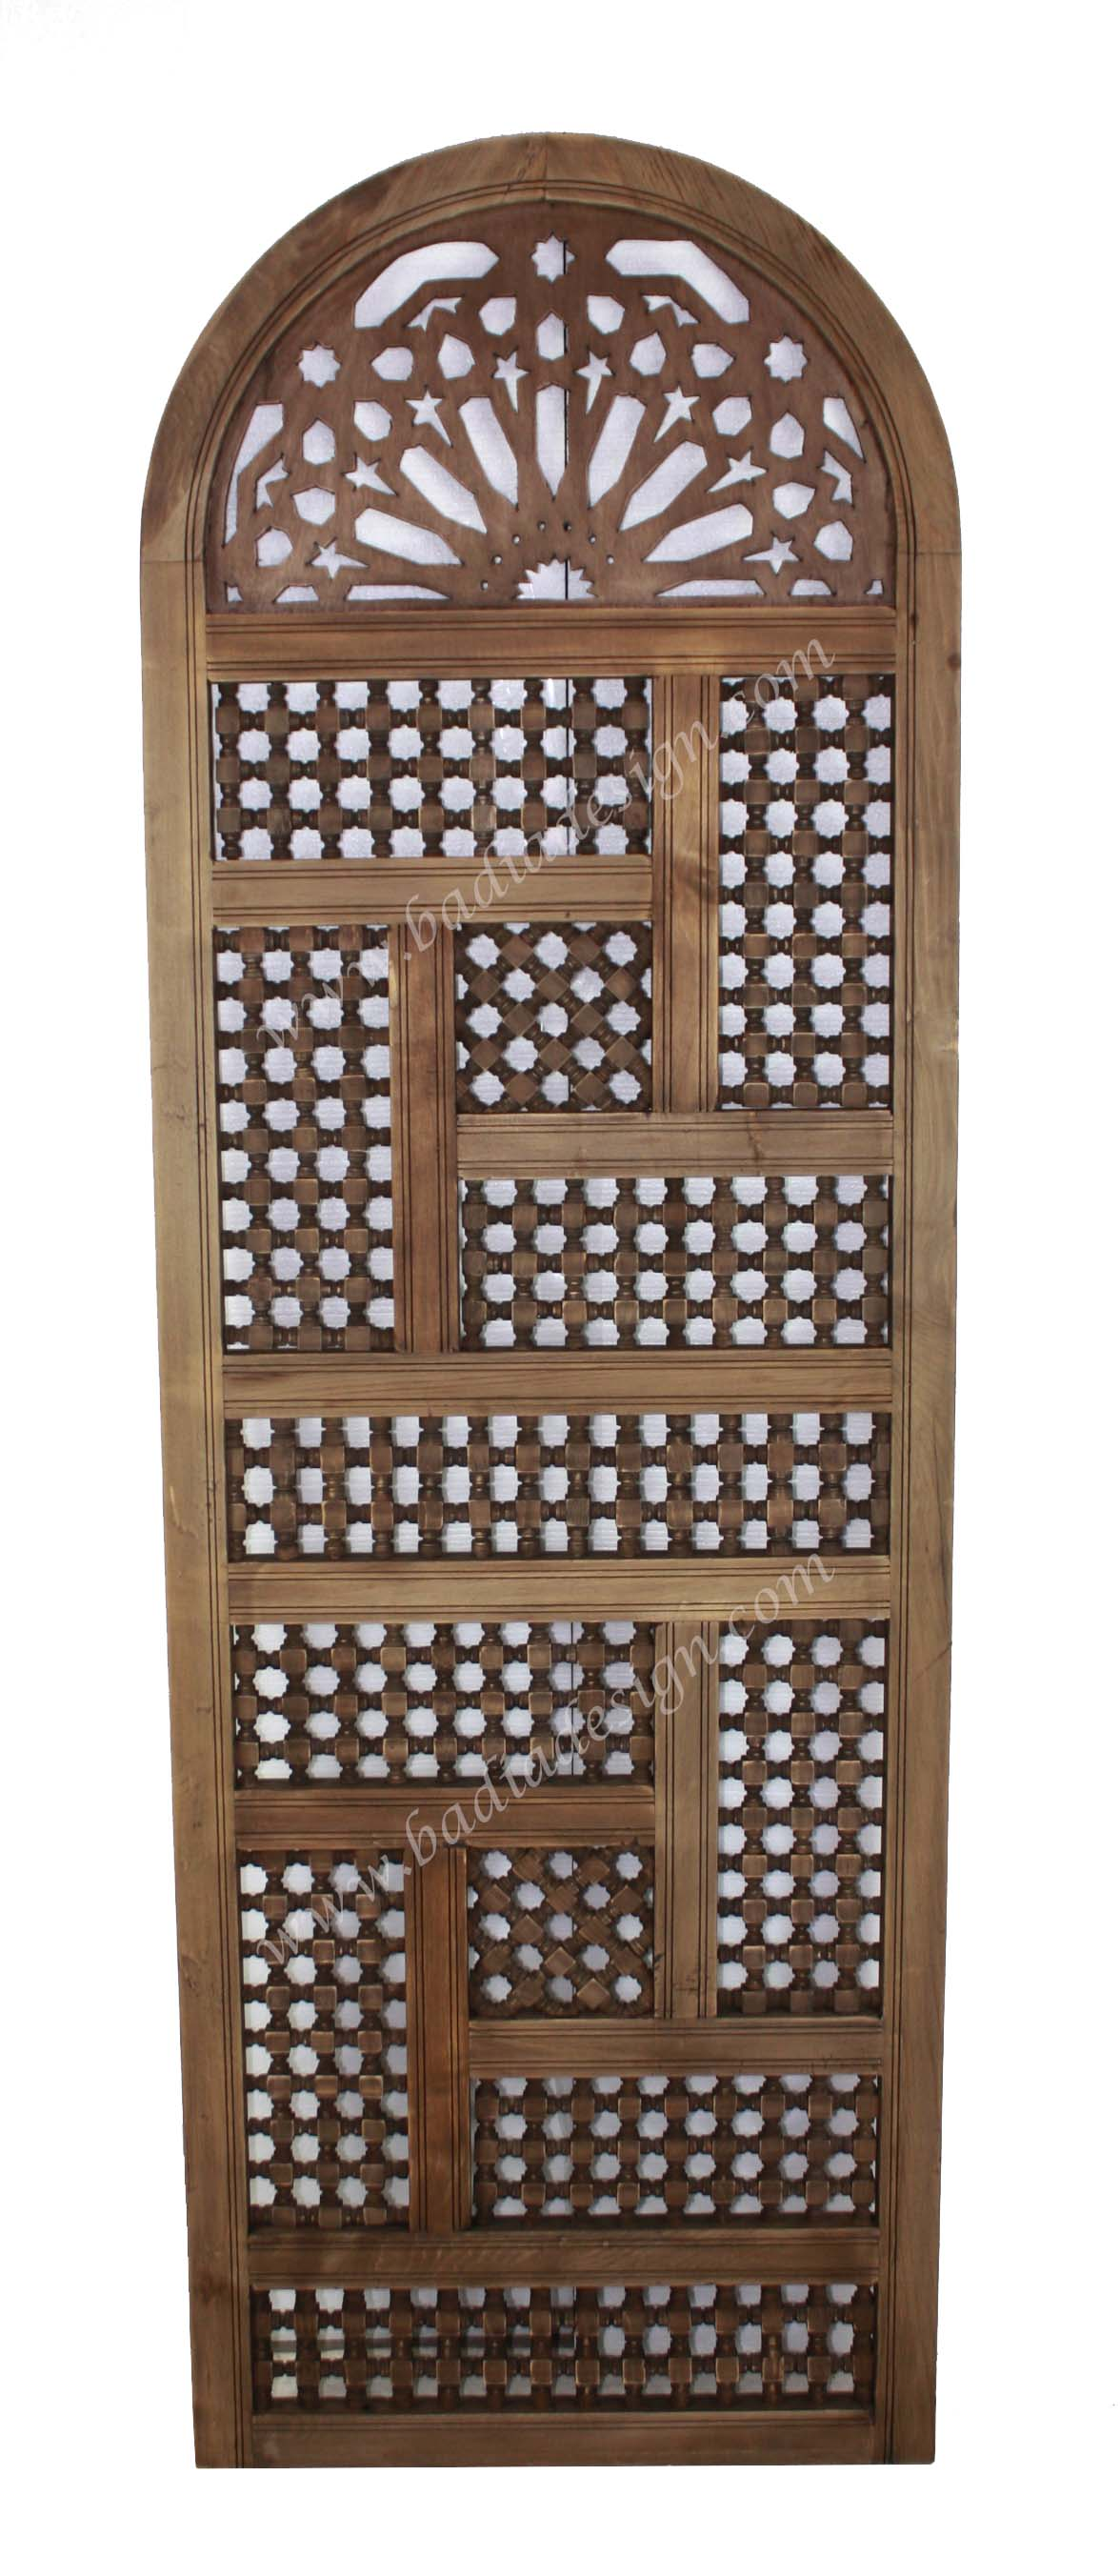 moroccan-moucharabieh-wood-panel-wpb-008-1.jpg